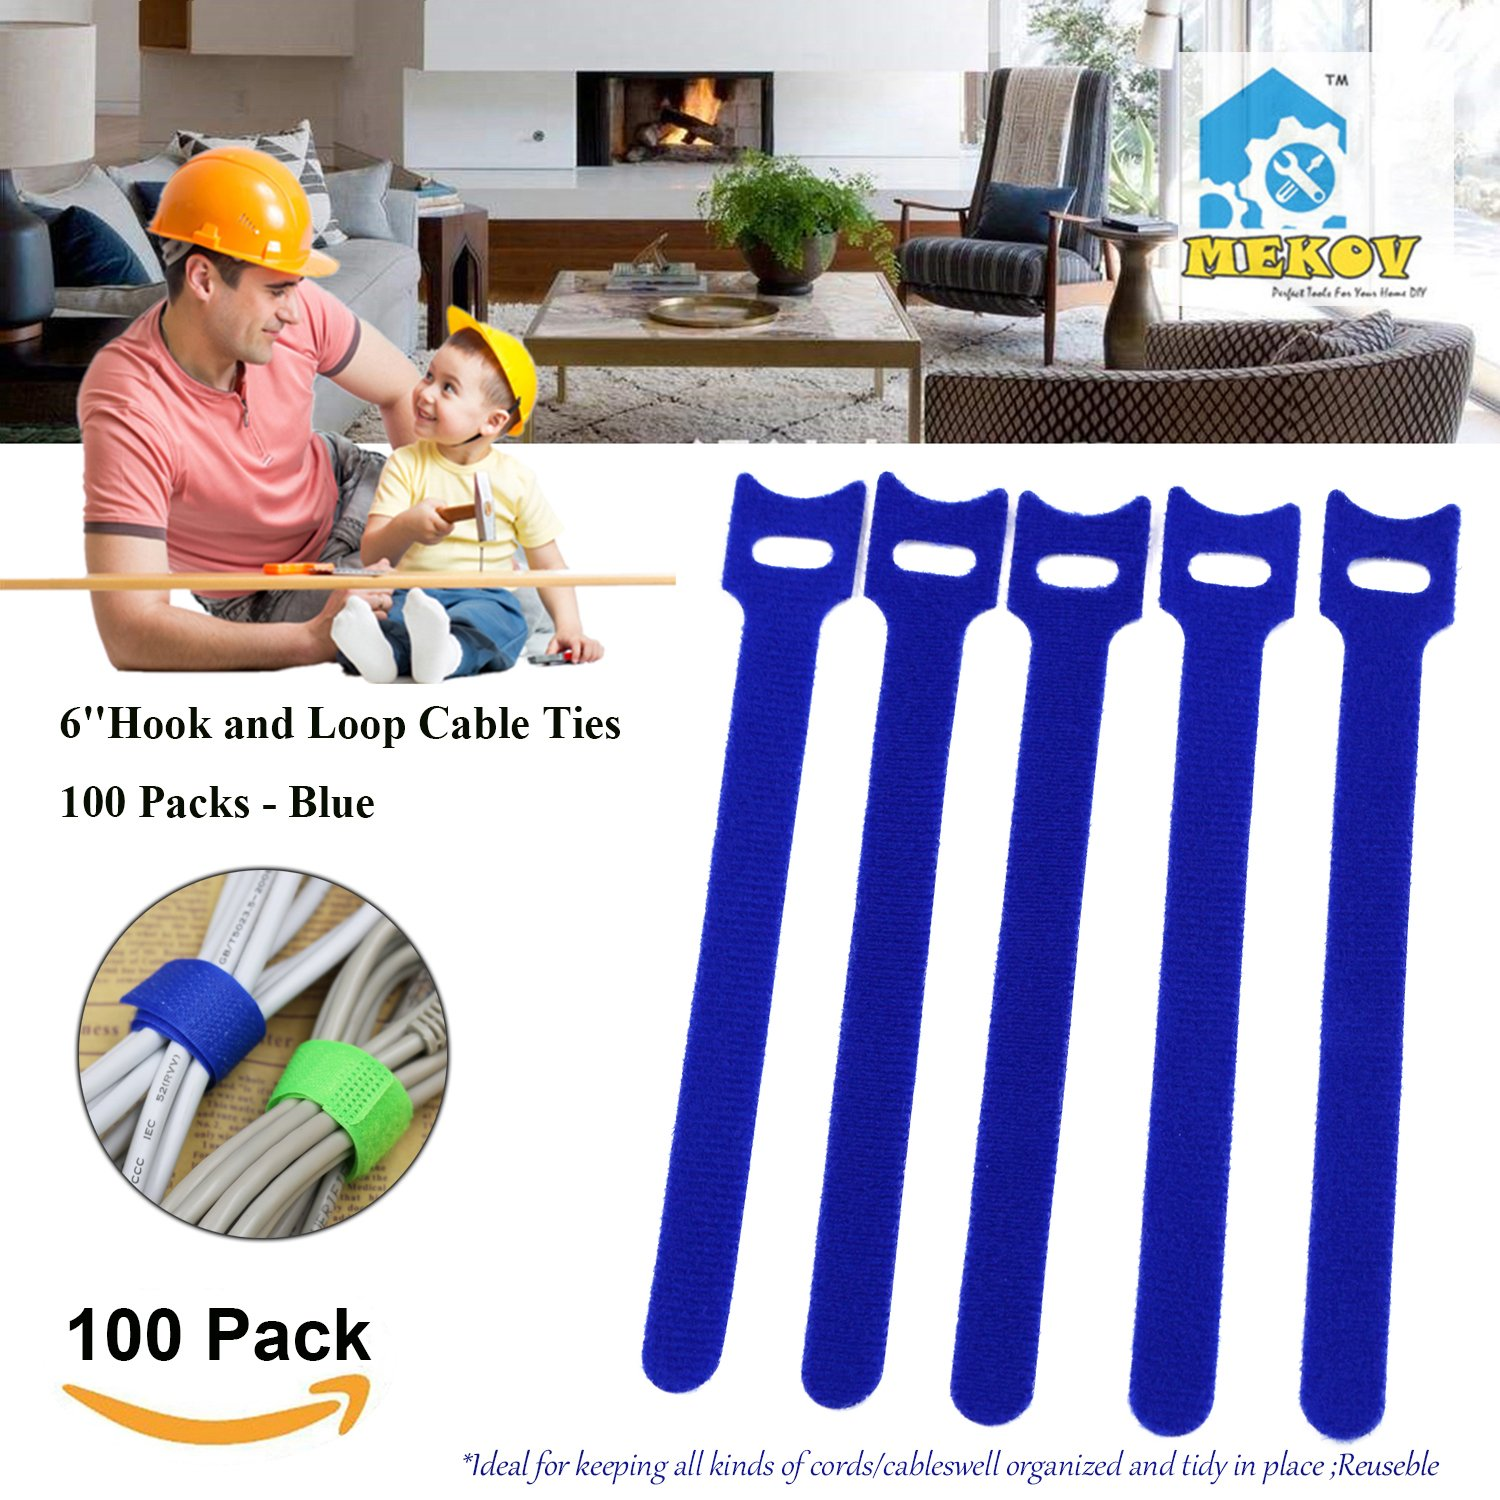 100pc 6 inch Cable Straps, Mekov, Hook and Loop Reusable Fastening Cable Ties Cord Wire Organizer for Home Office Tablet PC TV Wire Management (100 Pack, 6'', Blue)